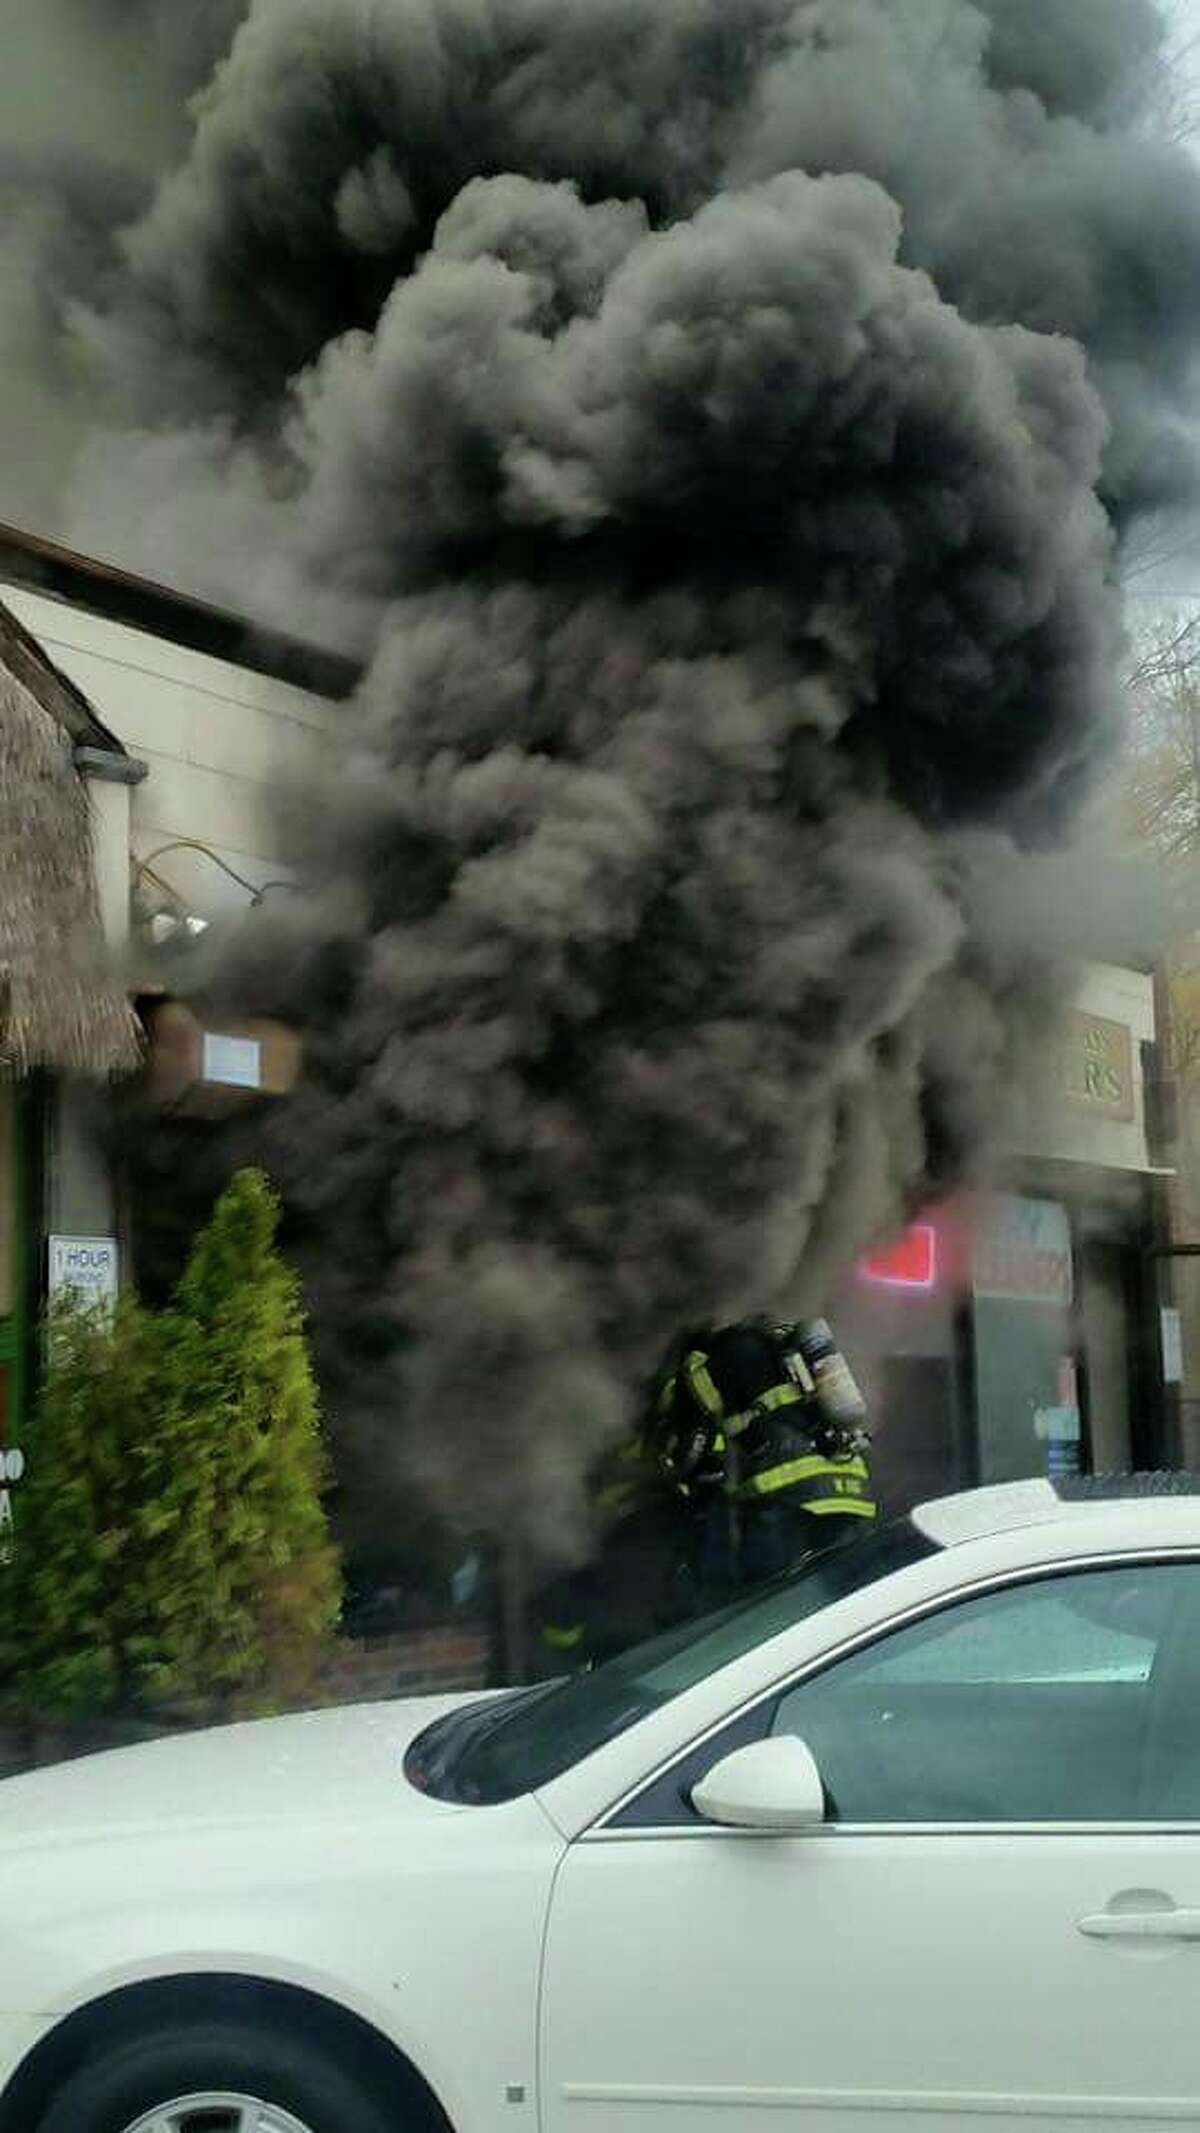 A fire on Thursday, Nov. 12, 2015 heavily damaged an East Norwalk shopping center. one-story shopping center 8 Rogers Square containing seven businesses According to Deputy Chief Chris King that fire broke out around 2:30 p.m. at a one-story shopping center 8 Rogers Square containing seven businesses including a variety store, dry cleaners, restaurant and florist.